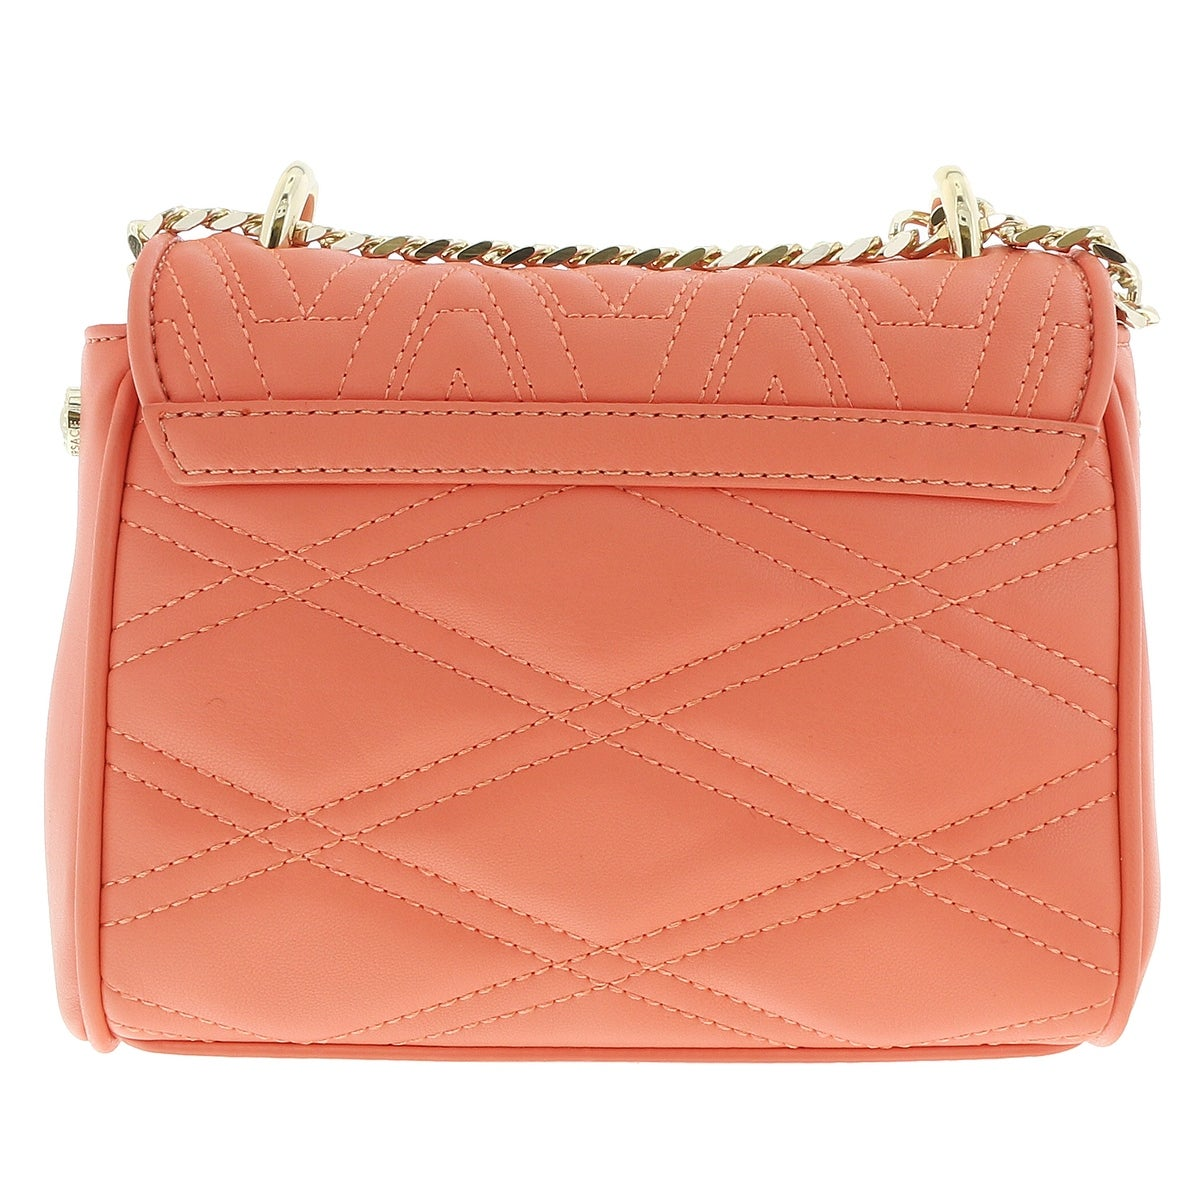 8e02043543 Shop Versace EE1VRBBY5 Coral Shoulder Bag - 8-6-4 - Free Shipping Today -  Overstock - 20223891